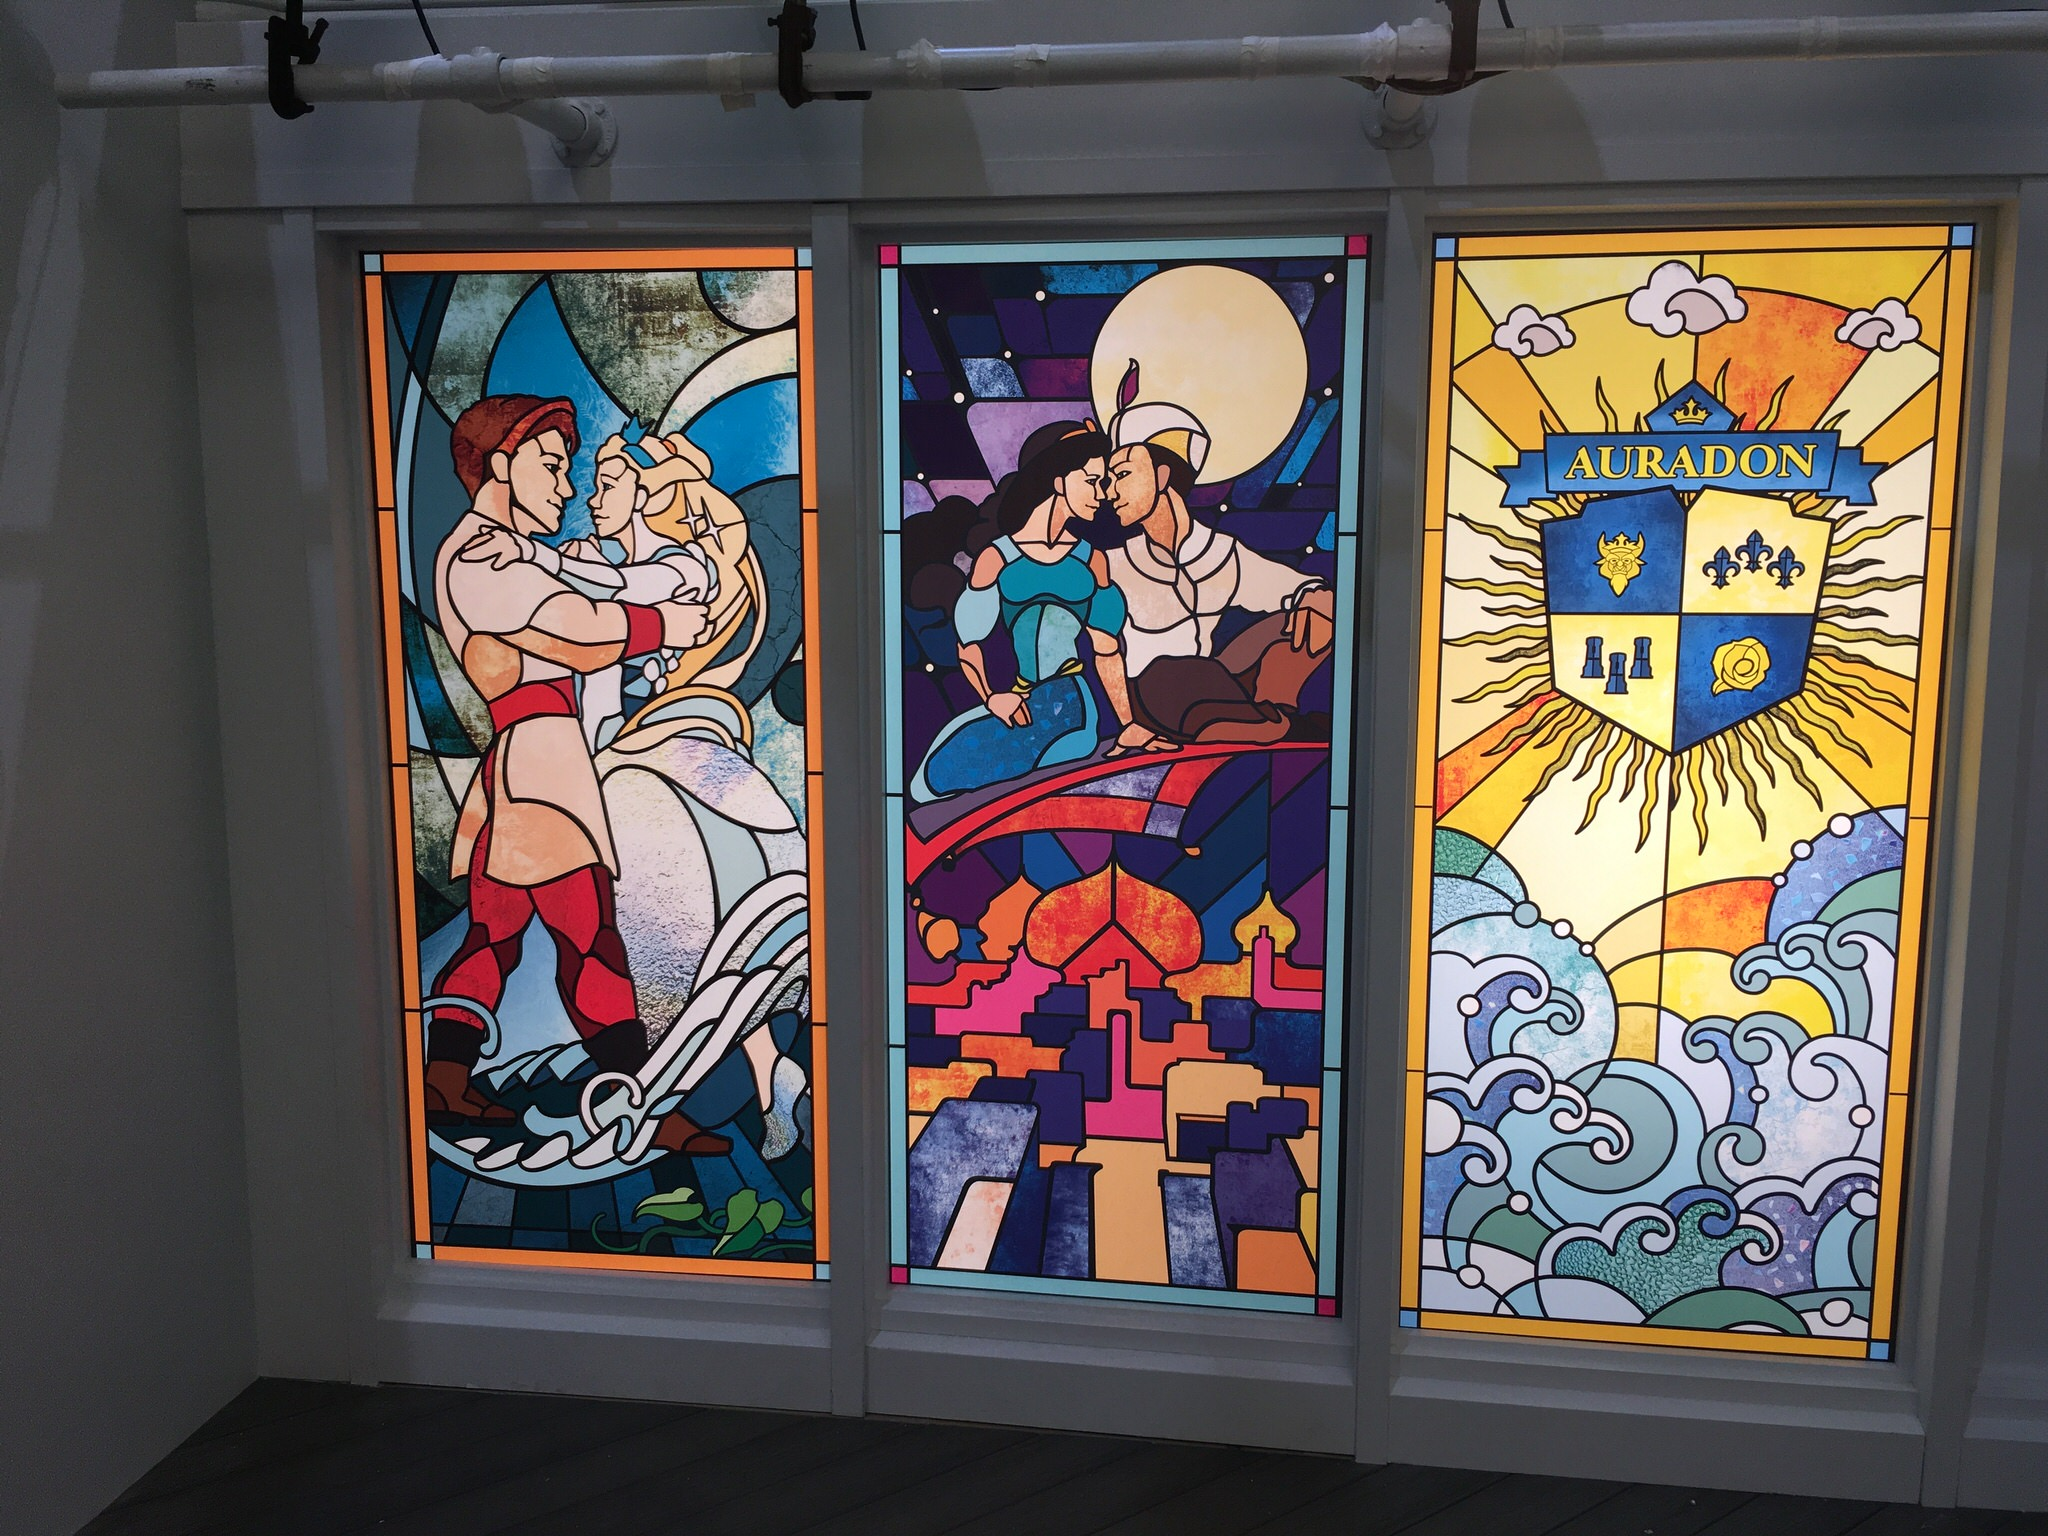 A detail of the stained glass windows on the yacht True Love, here celebrating Cinderella and Aladdin.